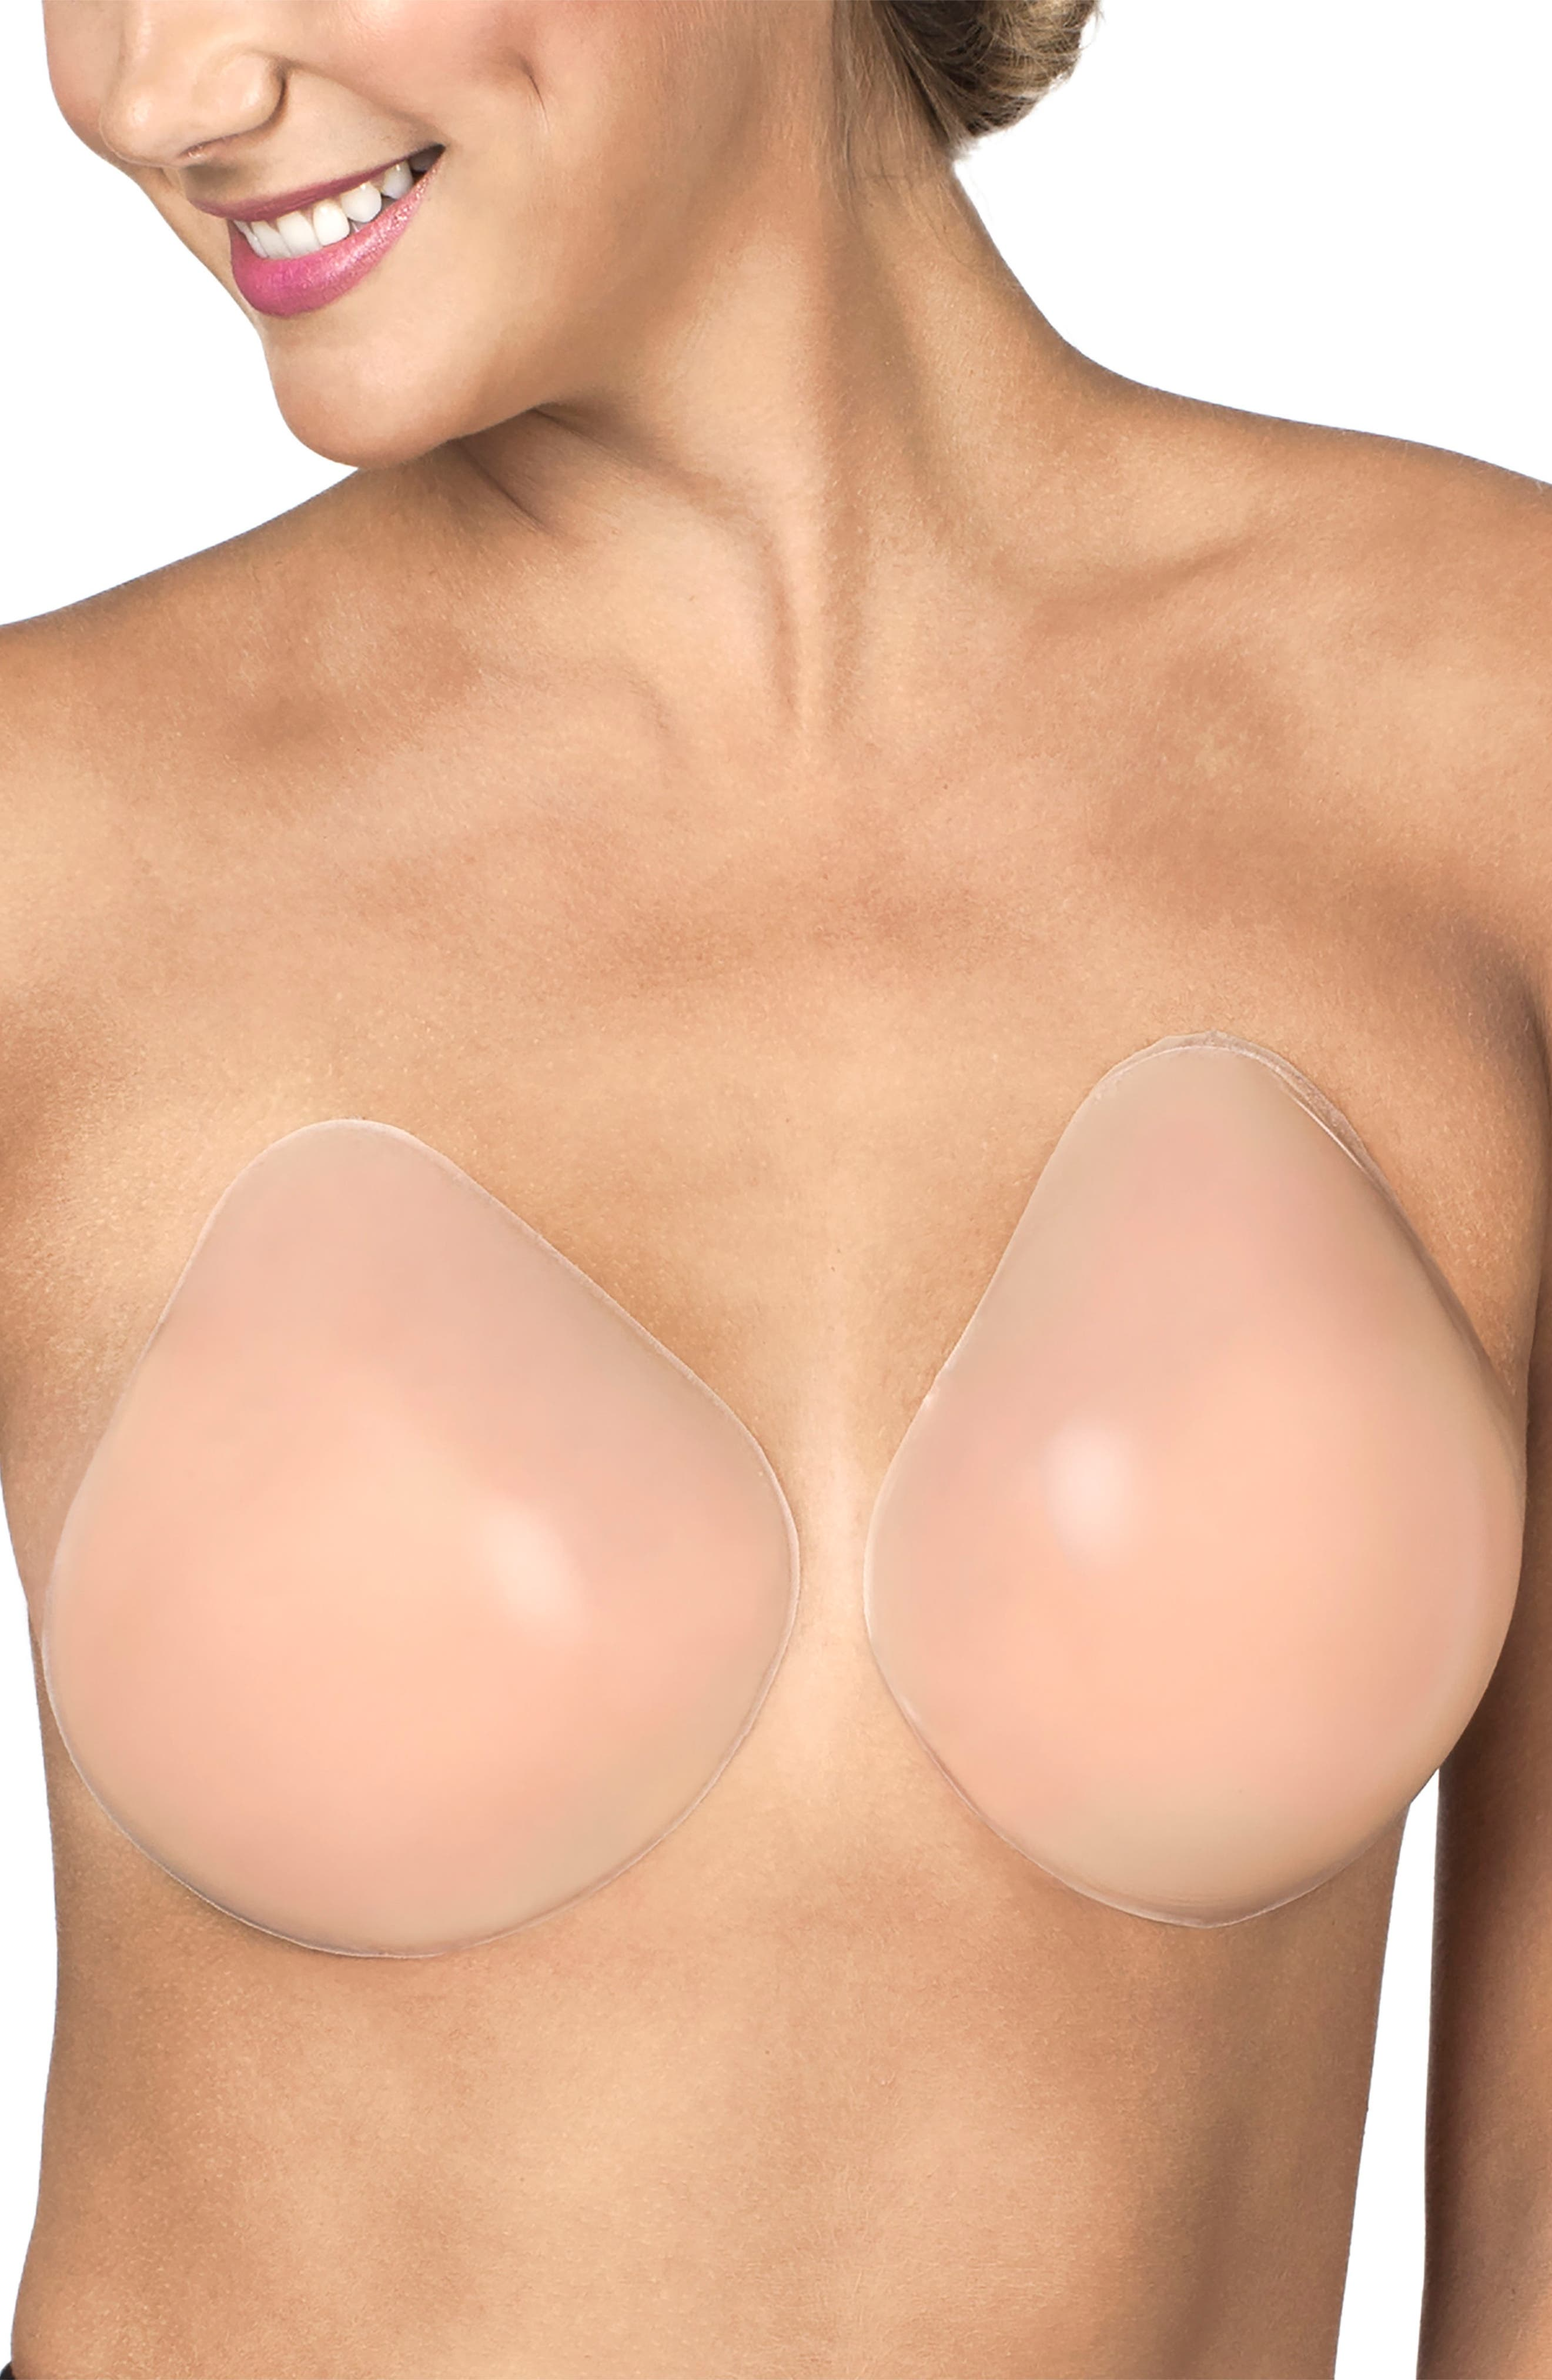 NORDSTROM LINGERIE,                             Lift It Up Adhesive Silicone Bra,                             Main thumbnail 1, color,                             NUDE